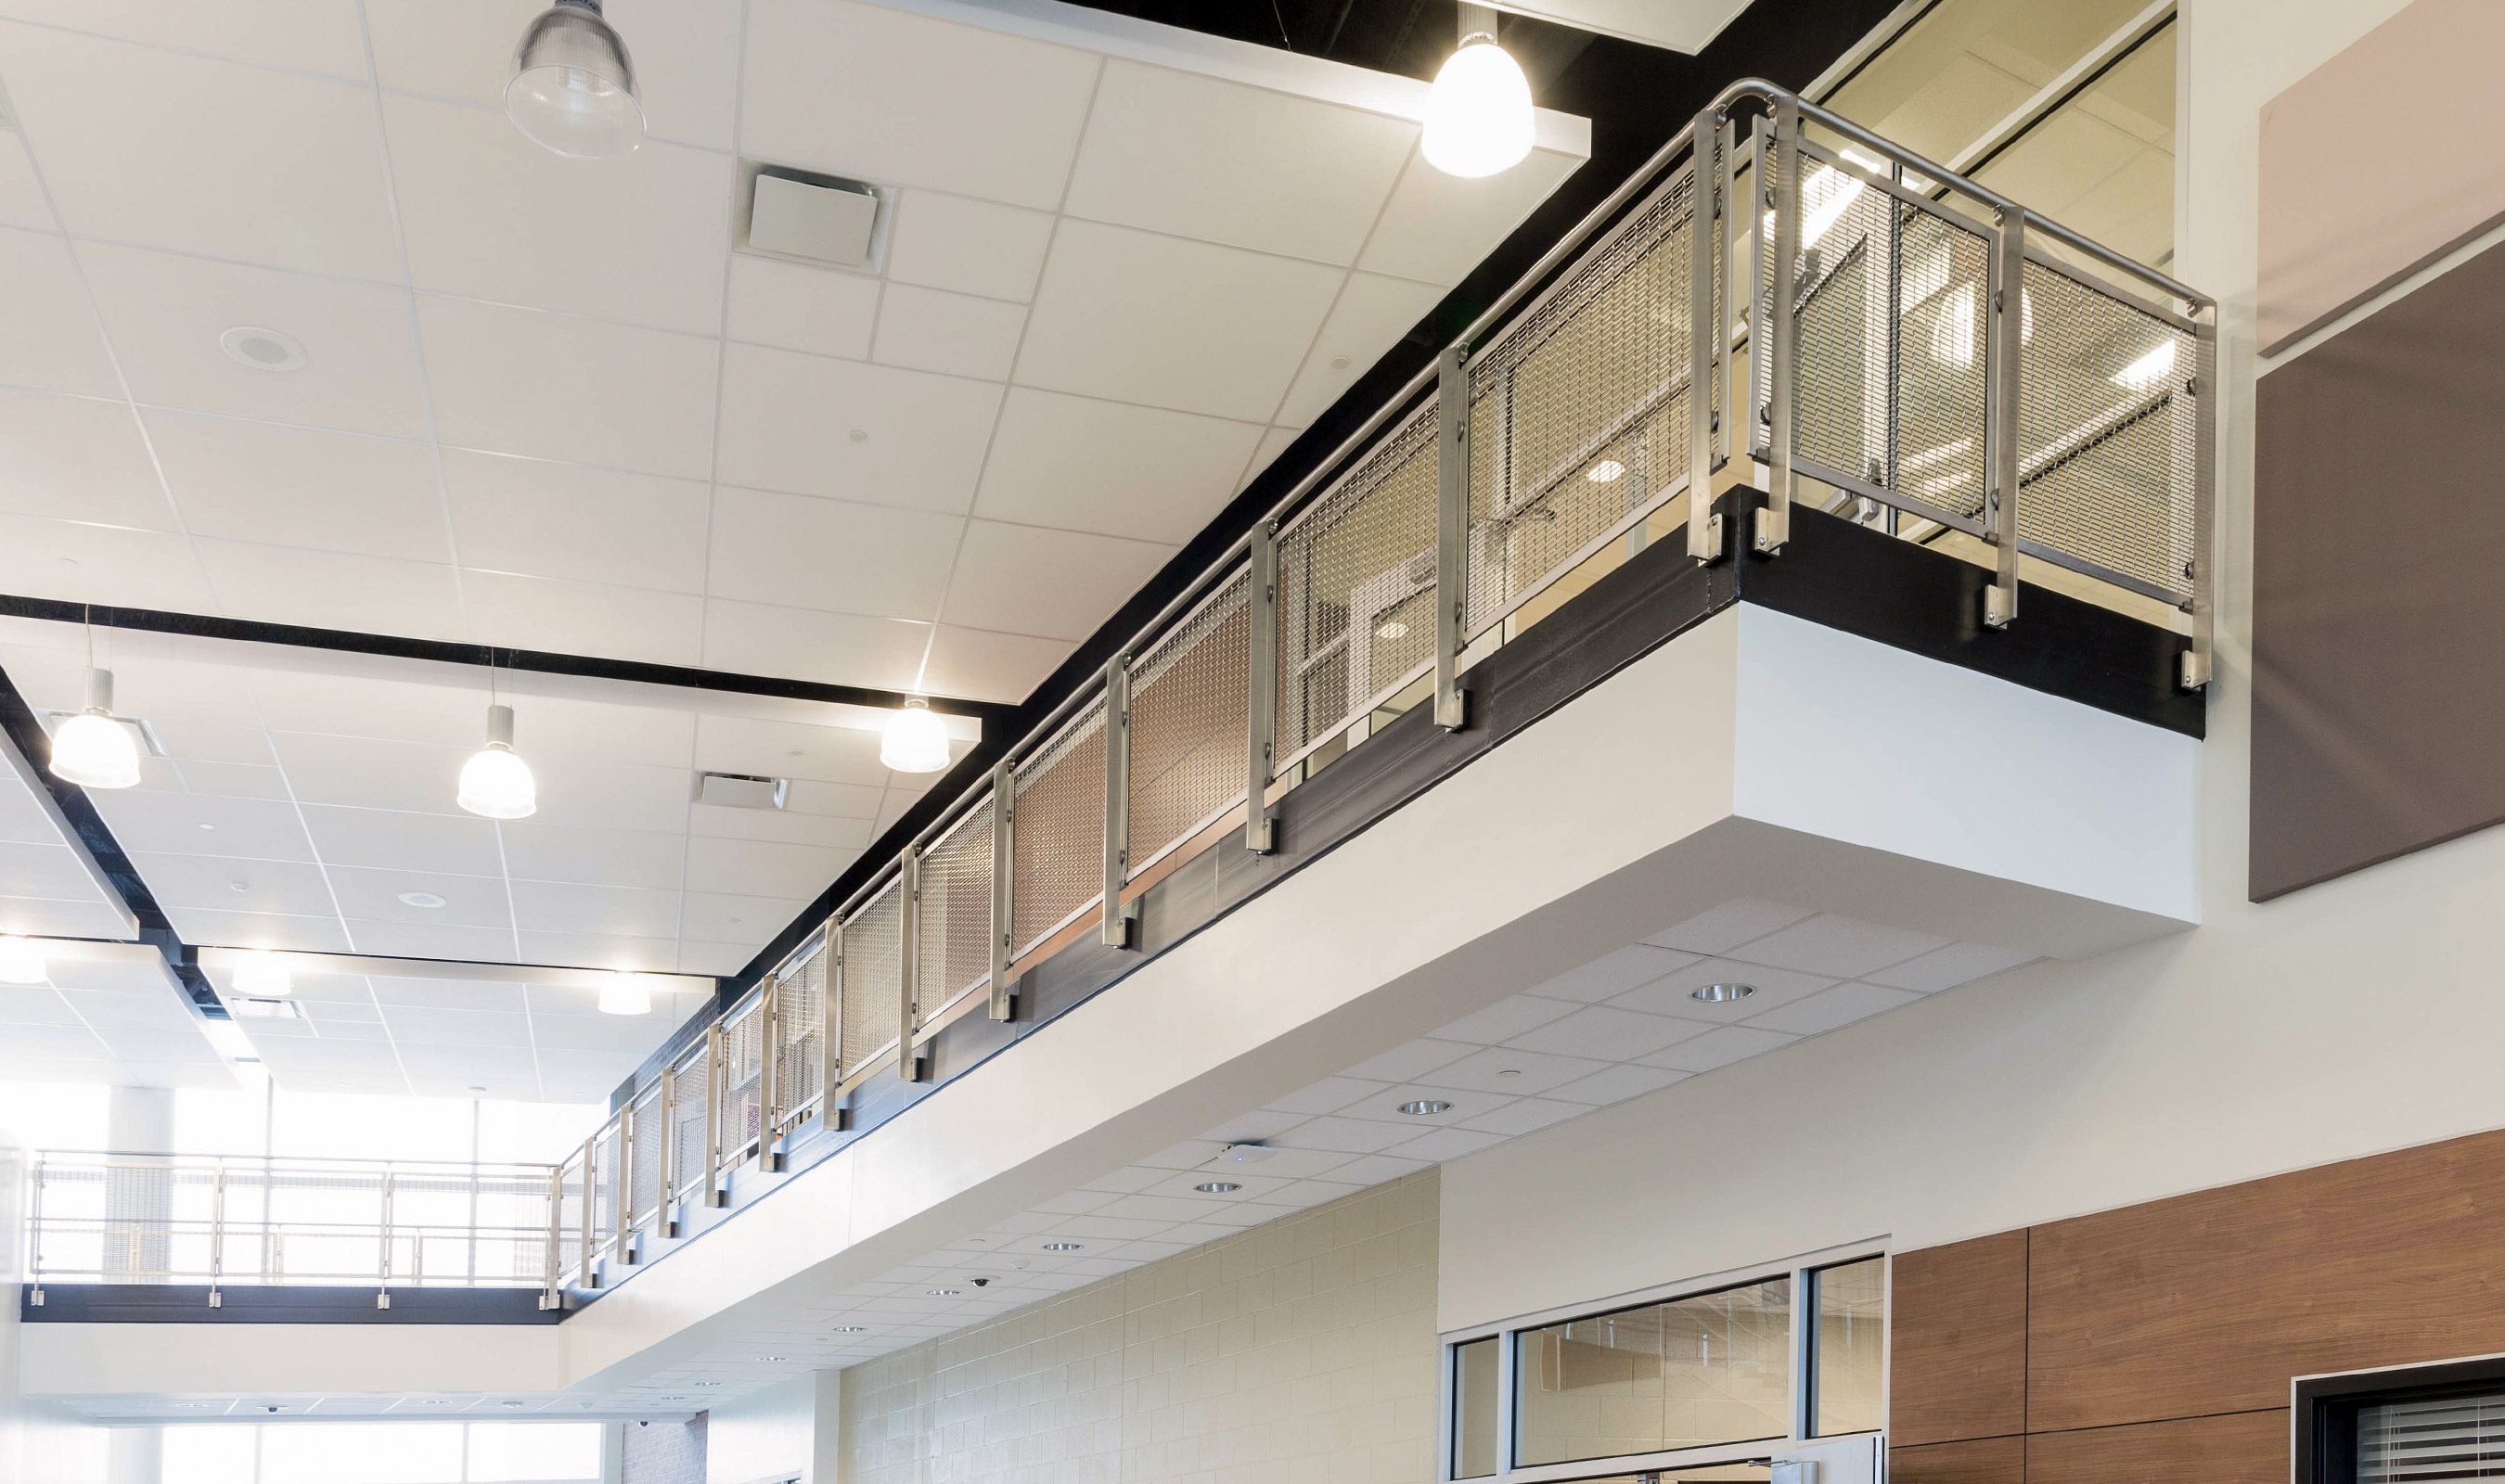 Banker Wire's woven wire mesh in stainless steel as balcony railing infill.